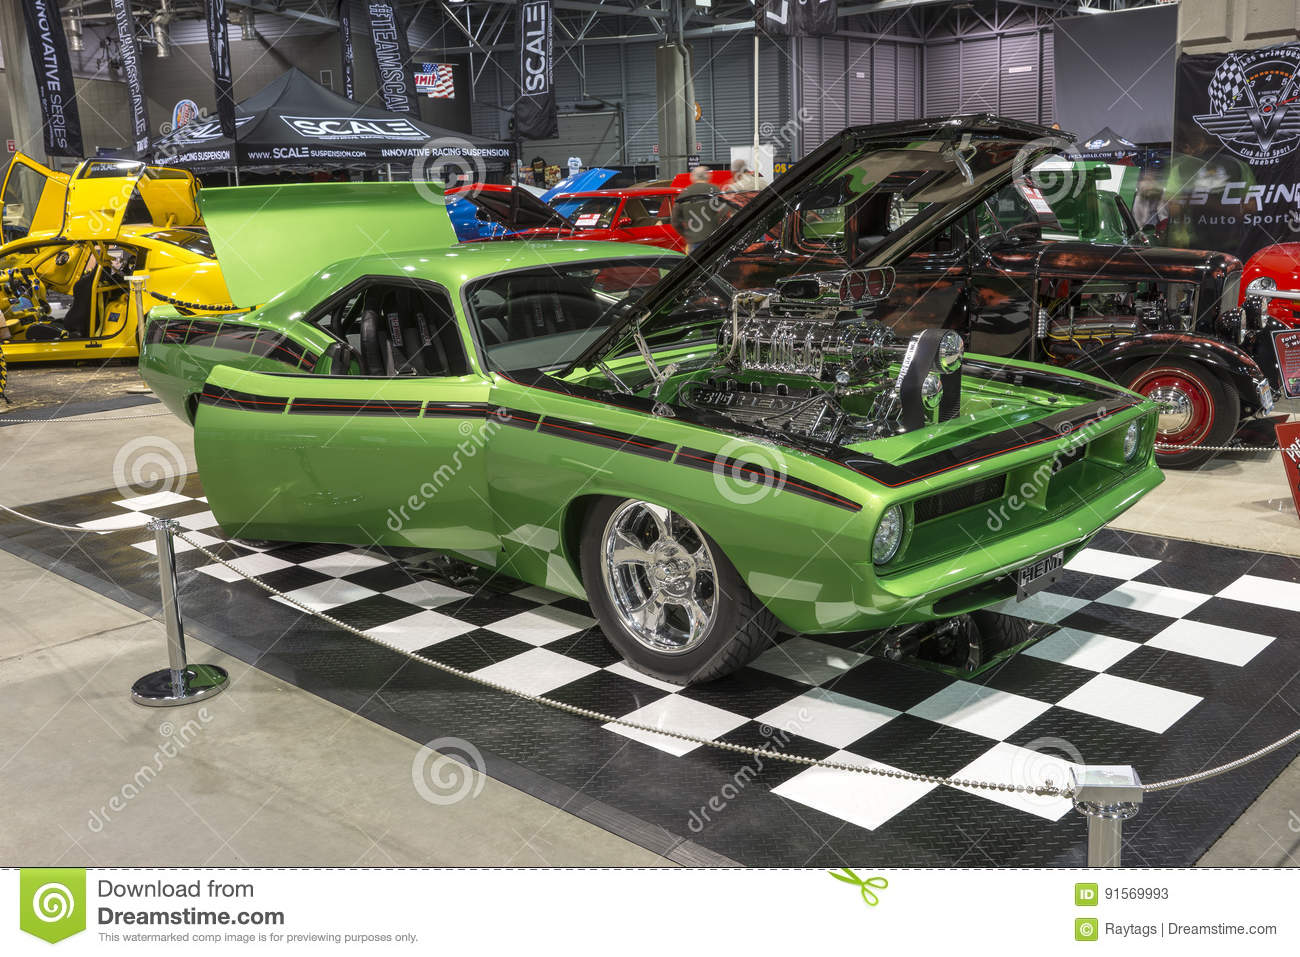 Plymouth barracuda custom editorial stock photo  Image of